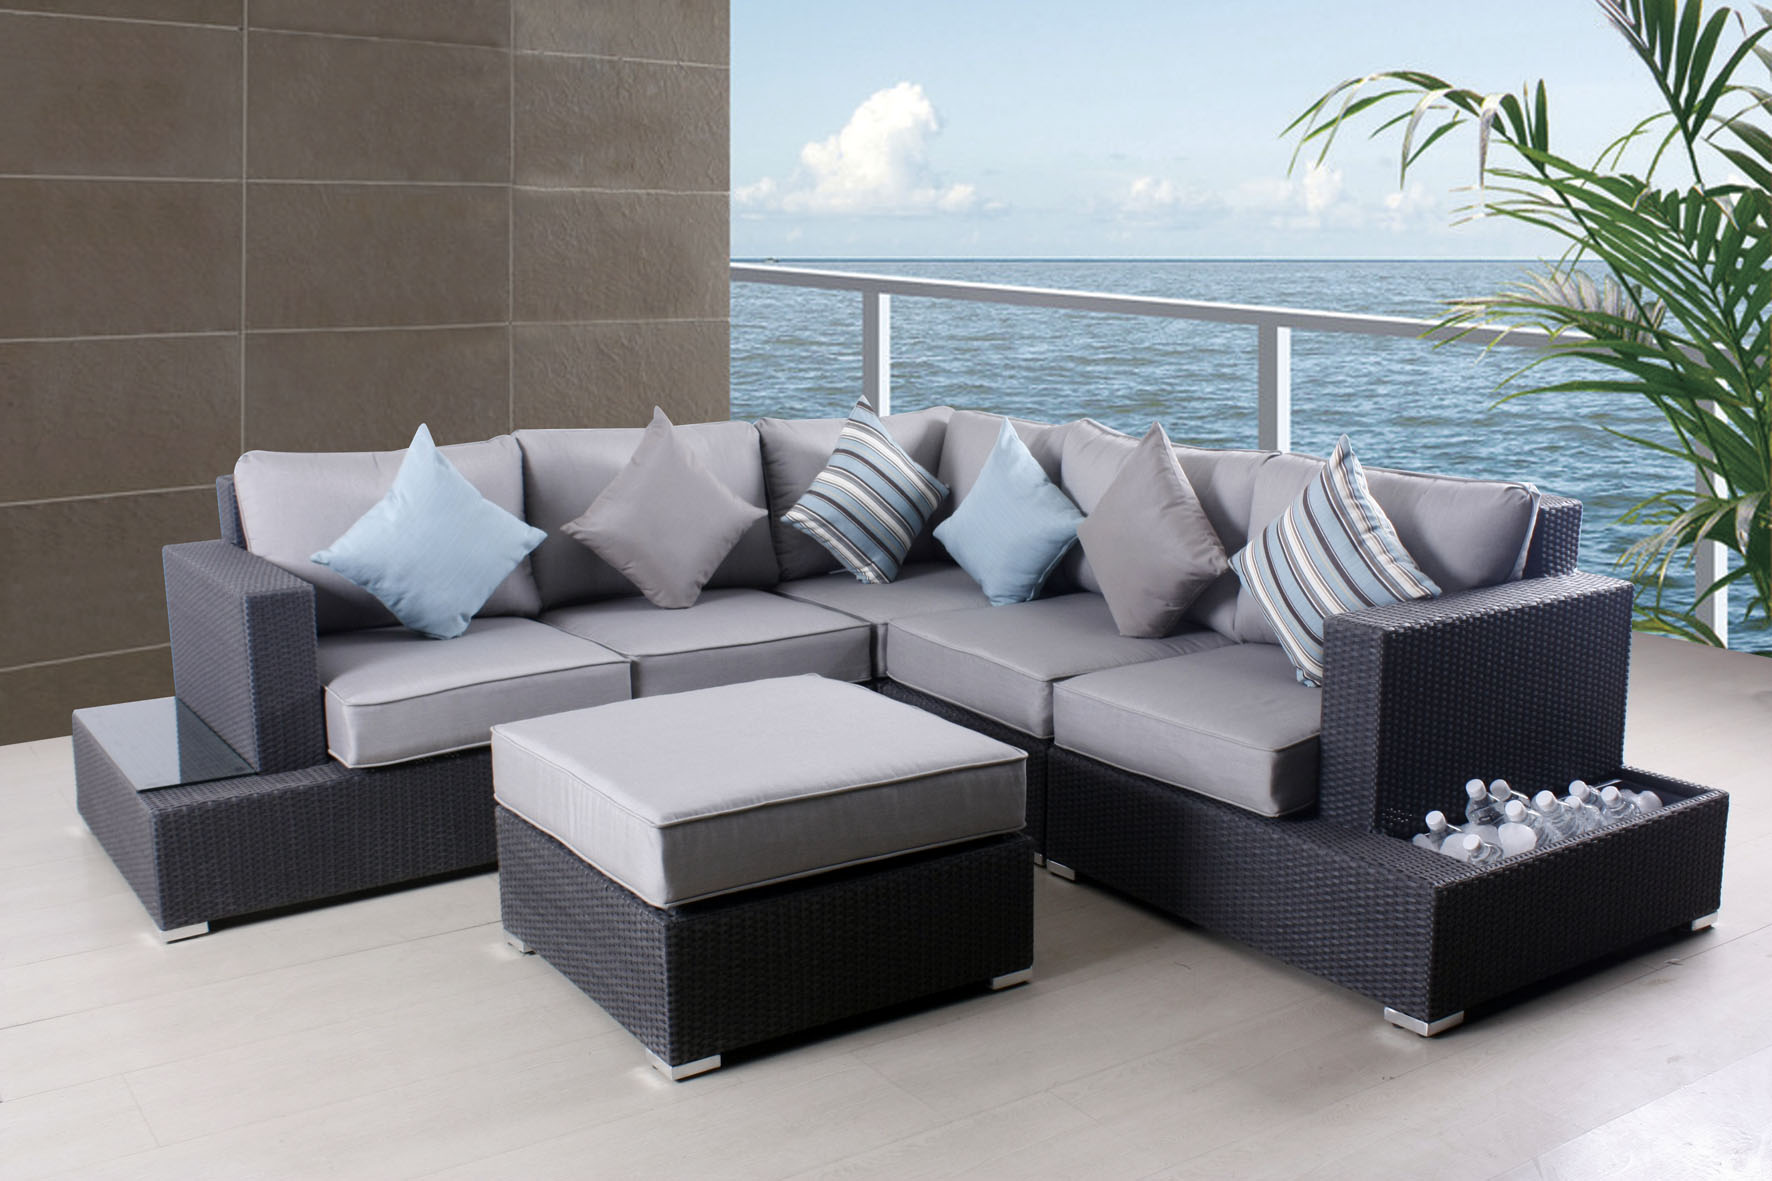 Easy tips for thomasville outdoor furniture purchase for Exterior furniture